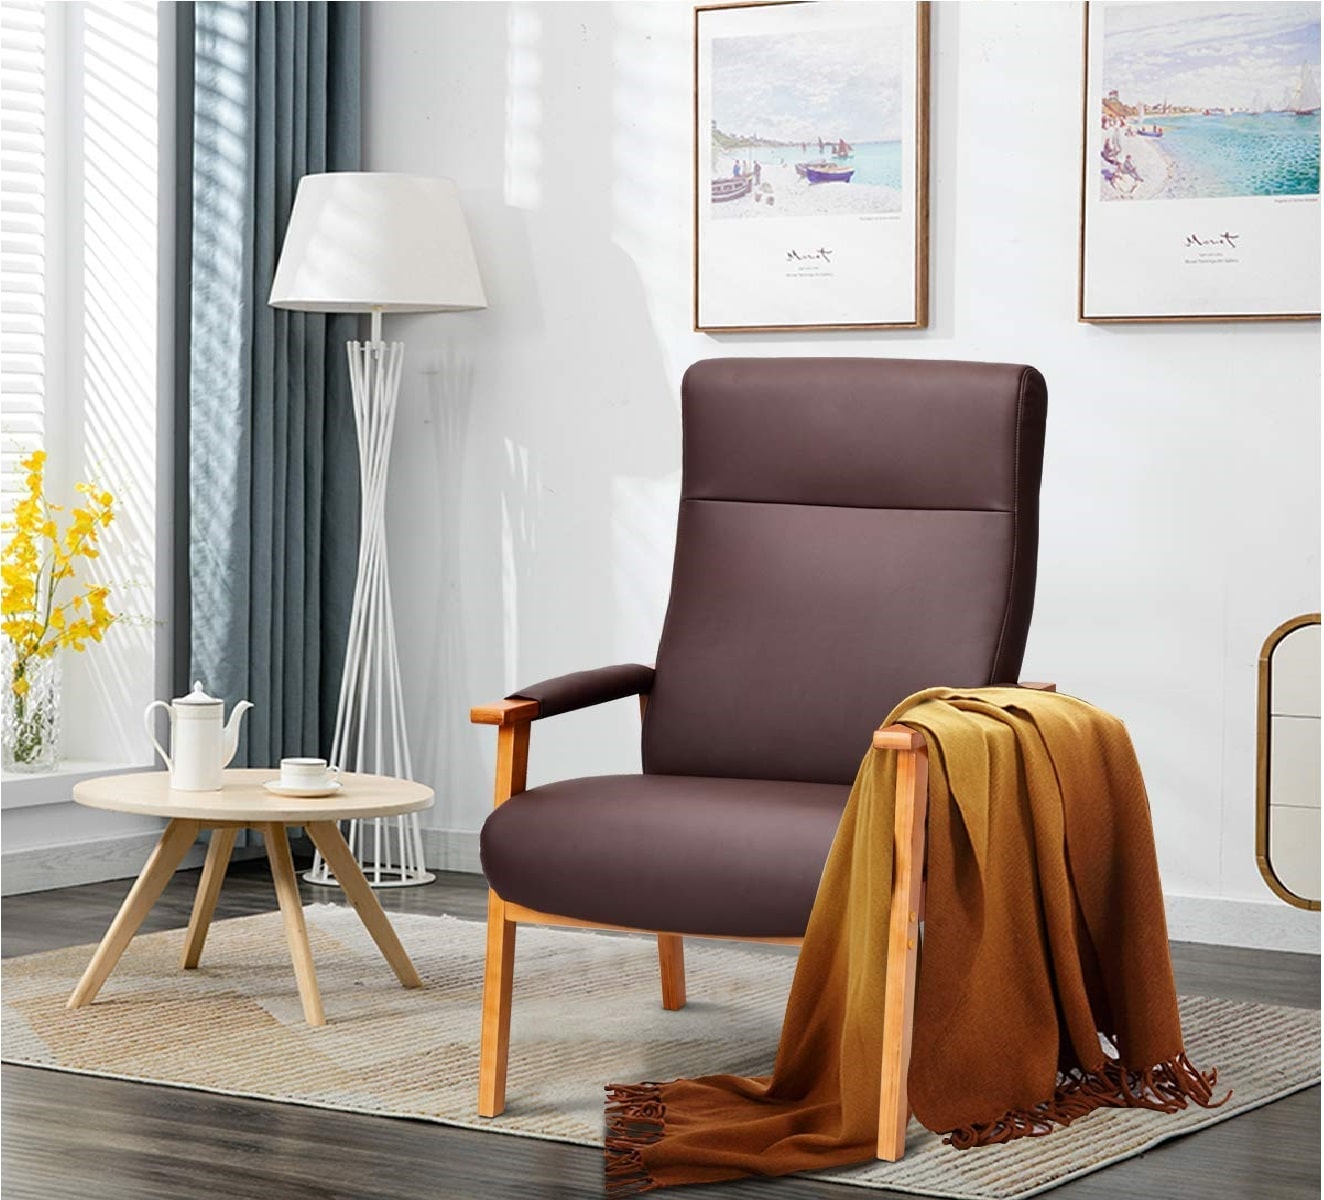 13.Giantex Accent Arm Chair PU Leather, High Lounge with Comfortable and Removable Cushions